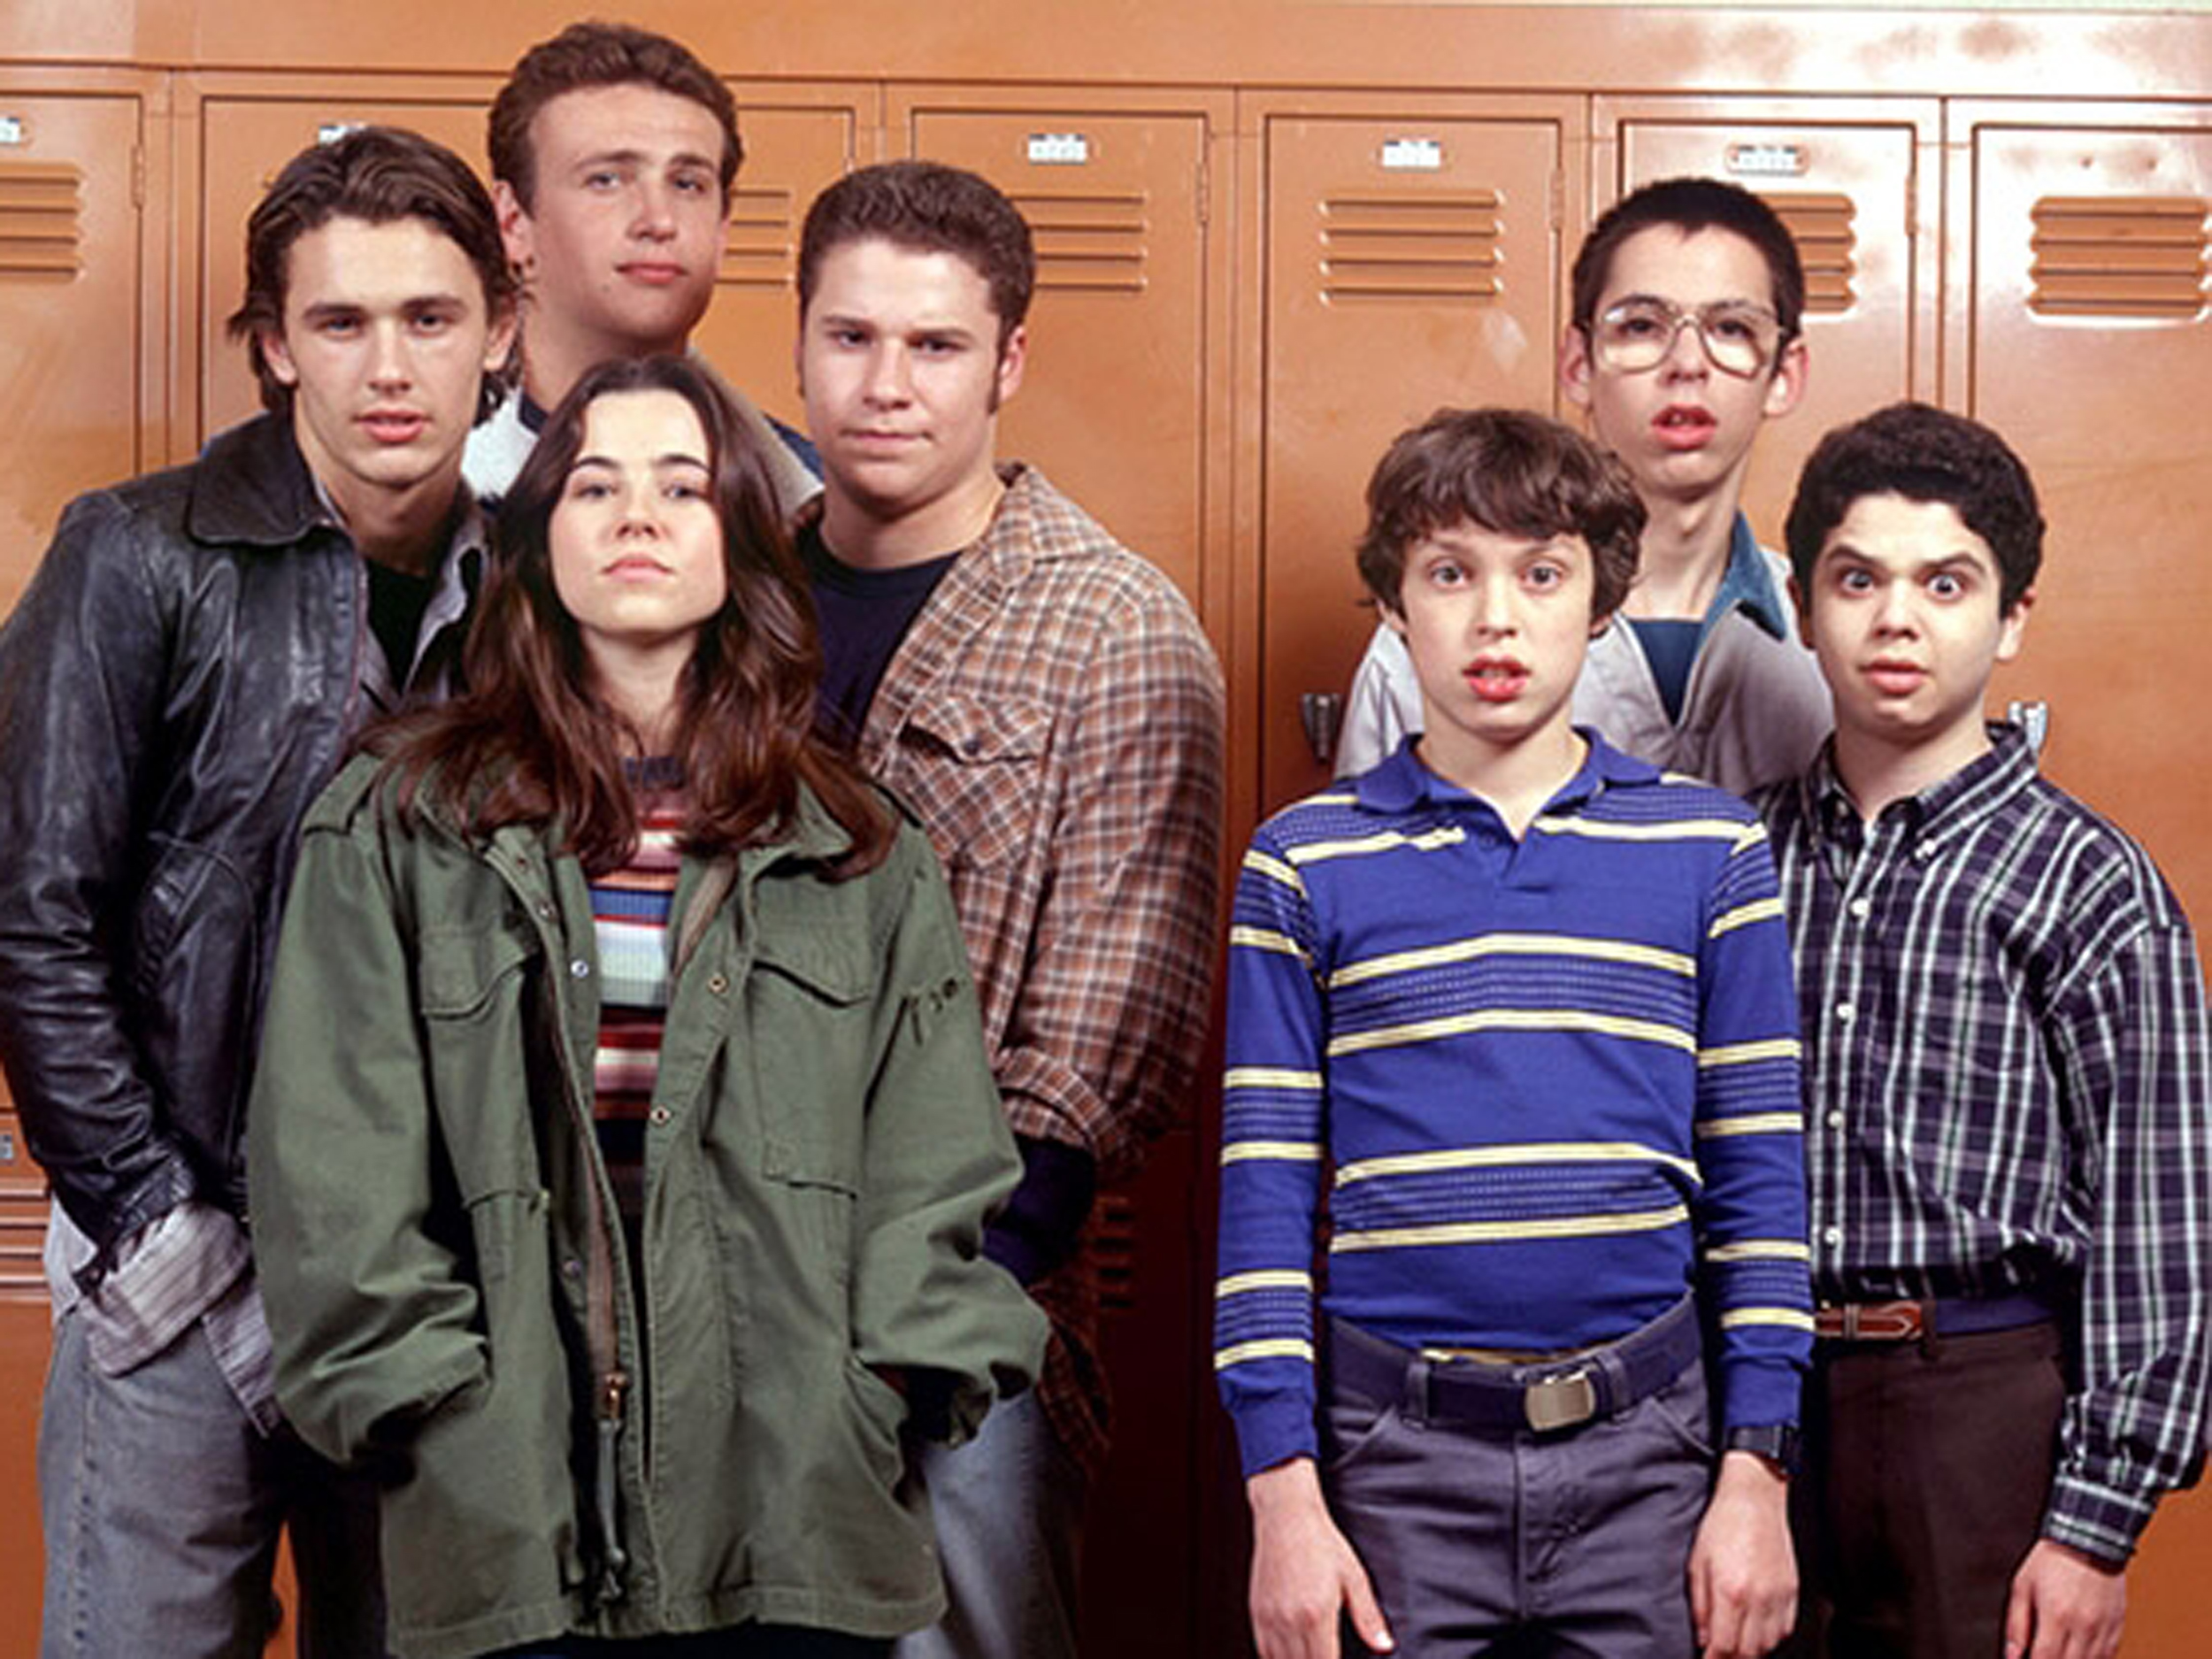 This 'Freaks and Geeks' star is writing the new 'Spider-Man' movie. No bigs.